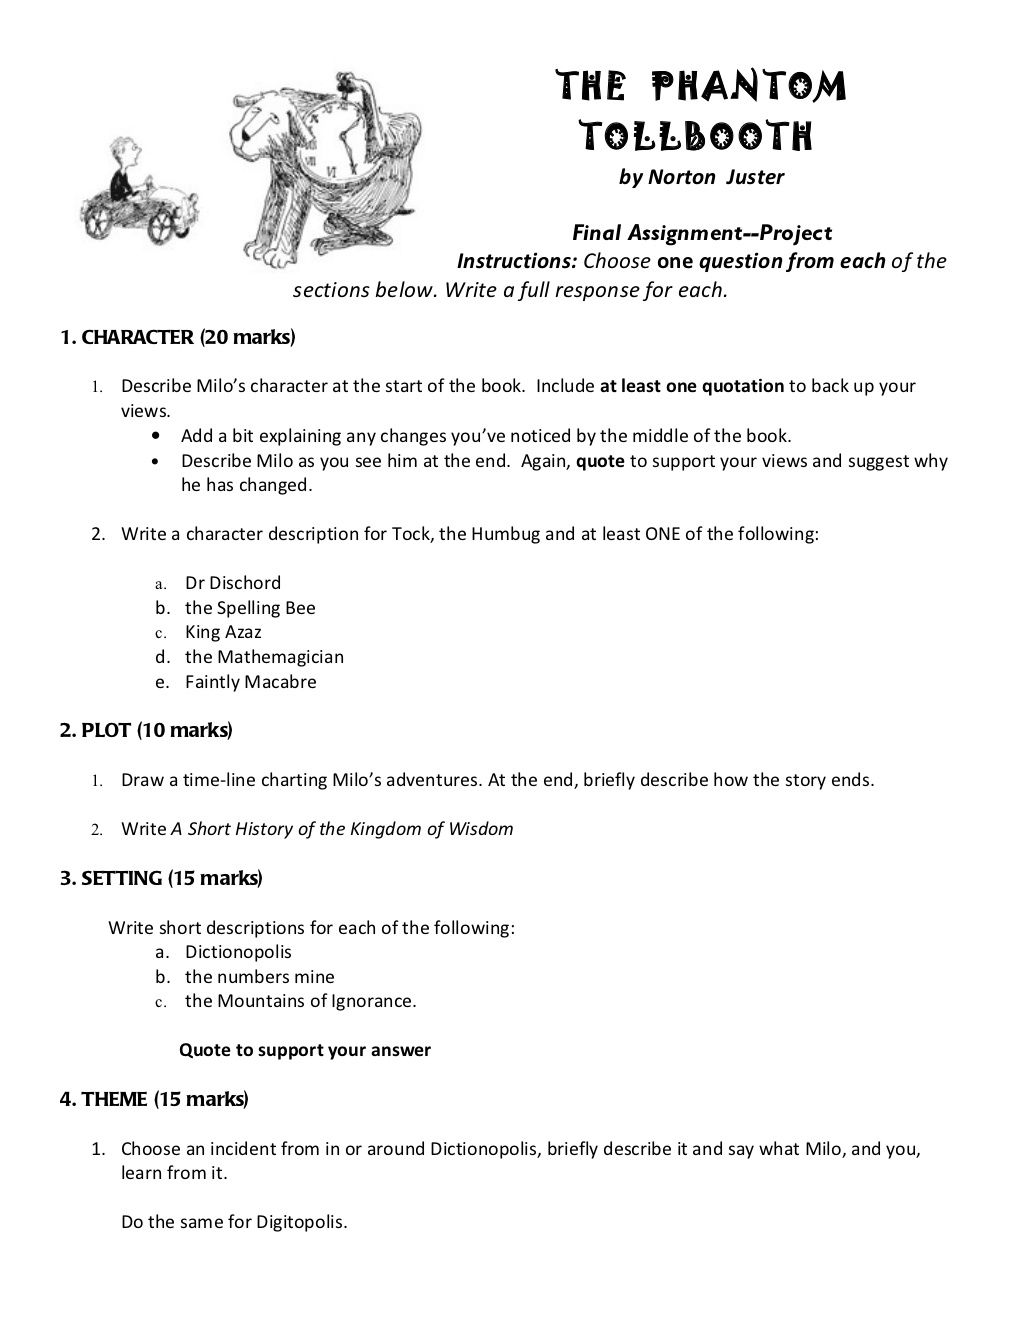 worksheet Phantom Tollbooth Worksheets 17 best images about the phantom tollbooth ideas and activities on pinterest literature homework student centered resource